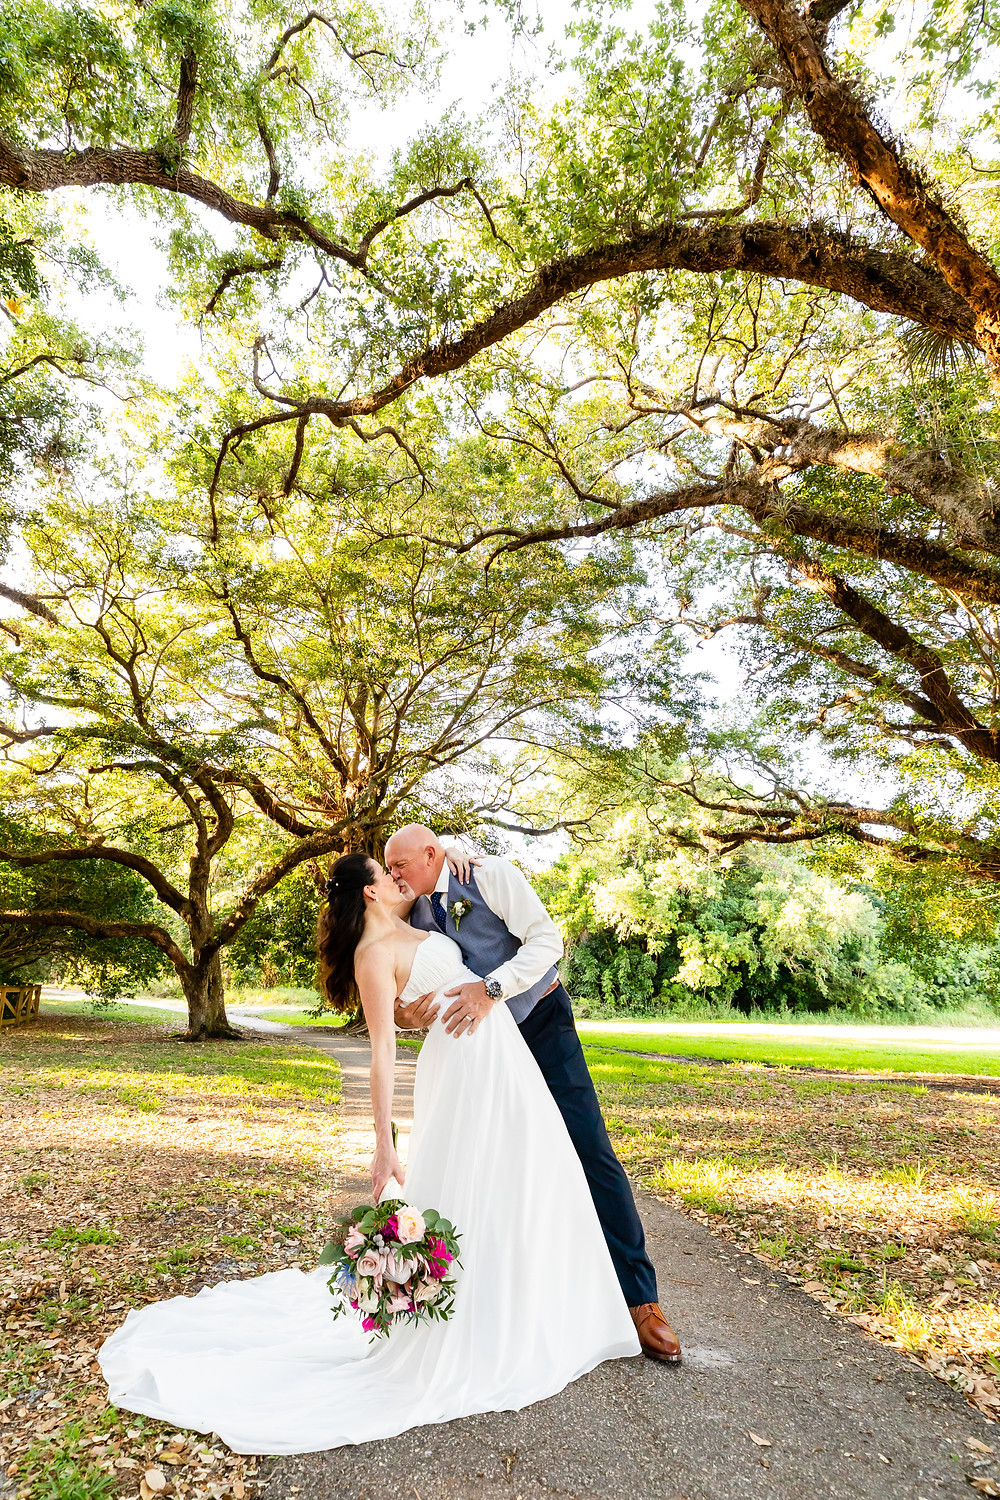 Cincinnati wedding photographer captures image of husband and wife kissing under trees in the park.